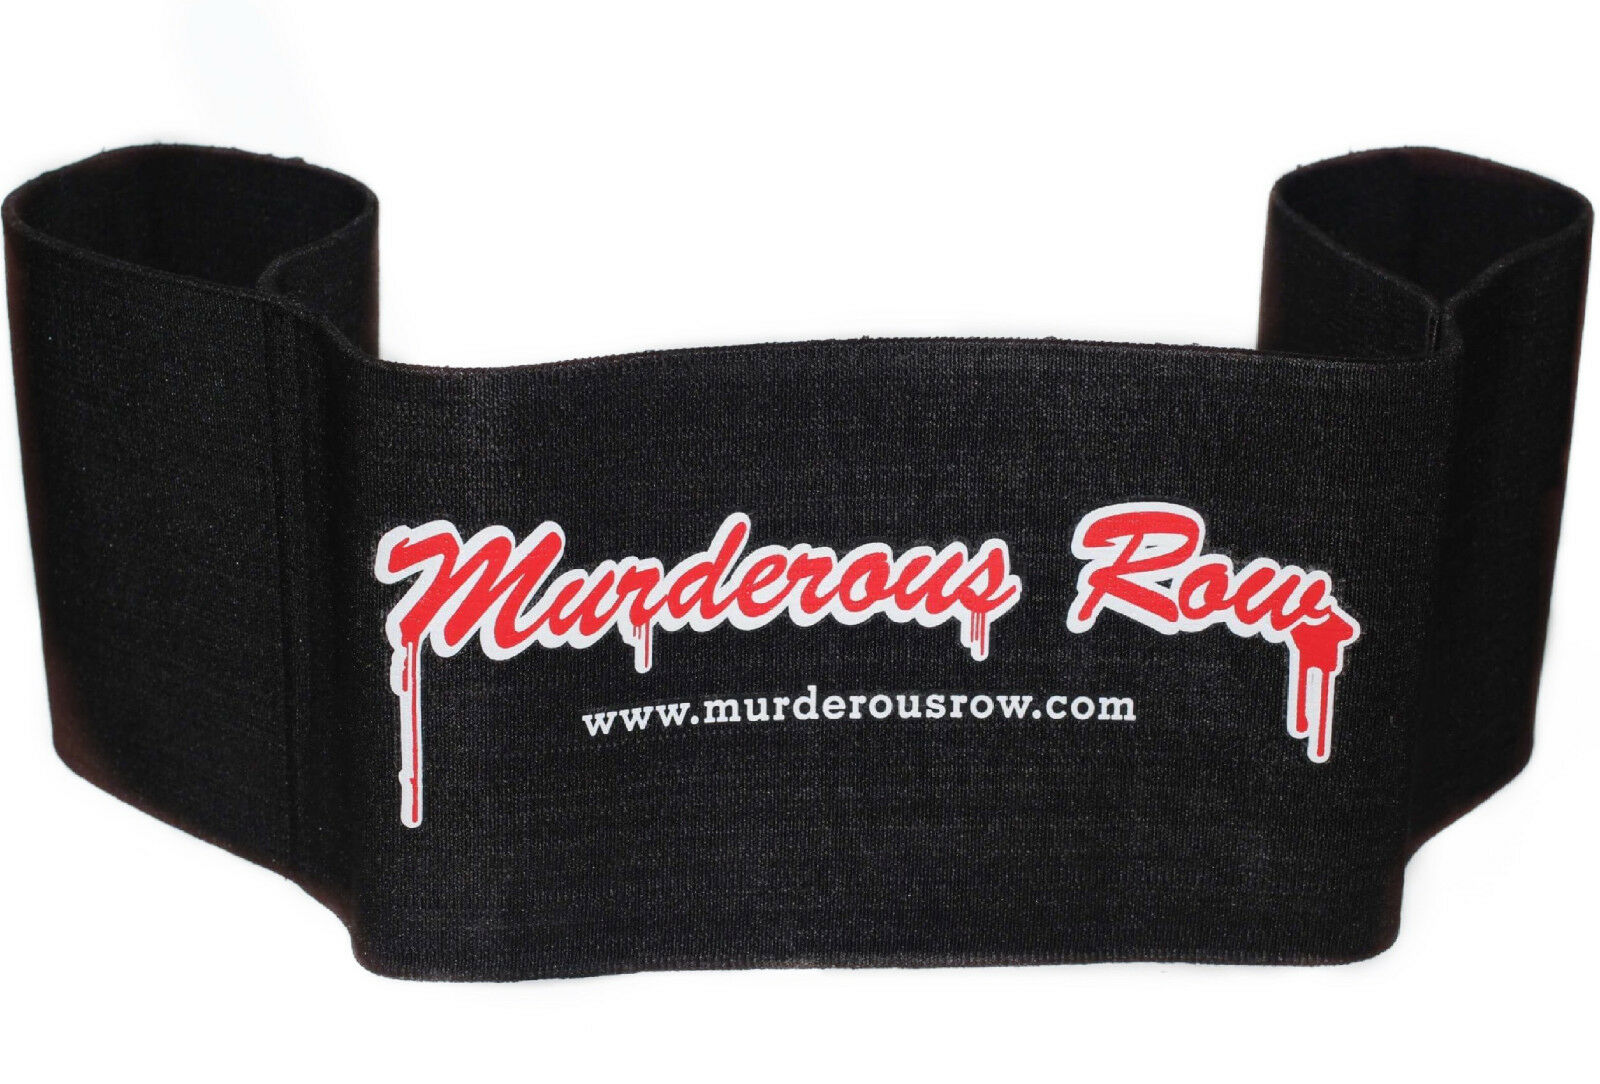 Mark bell MURDEROUS ROW  Sling Shot for Bench Press - FASTEST SHIPPING